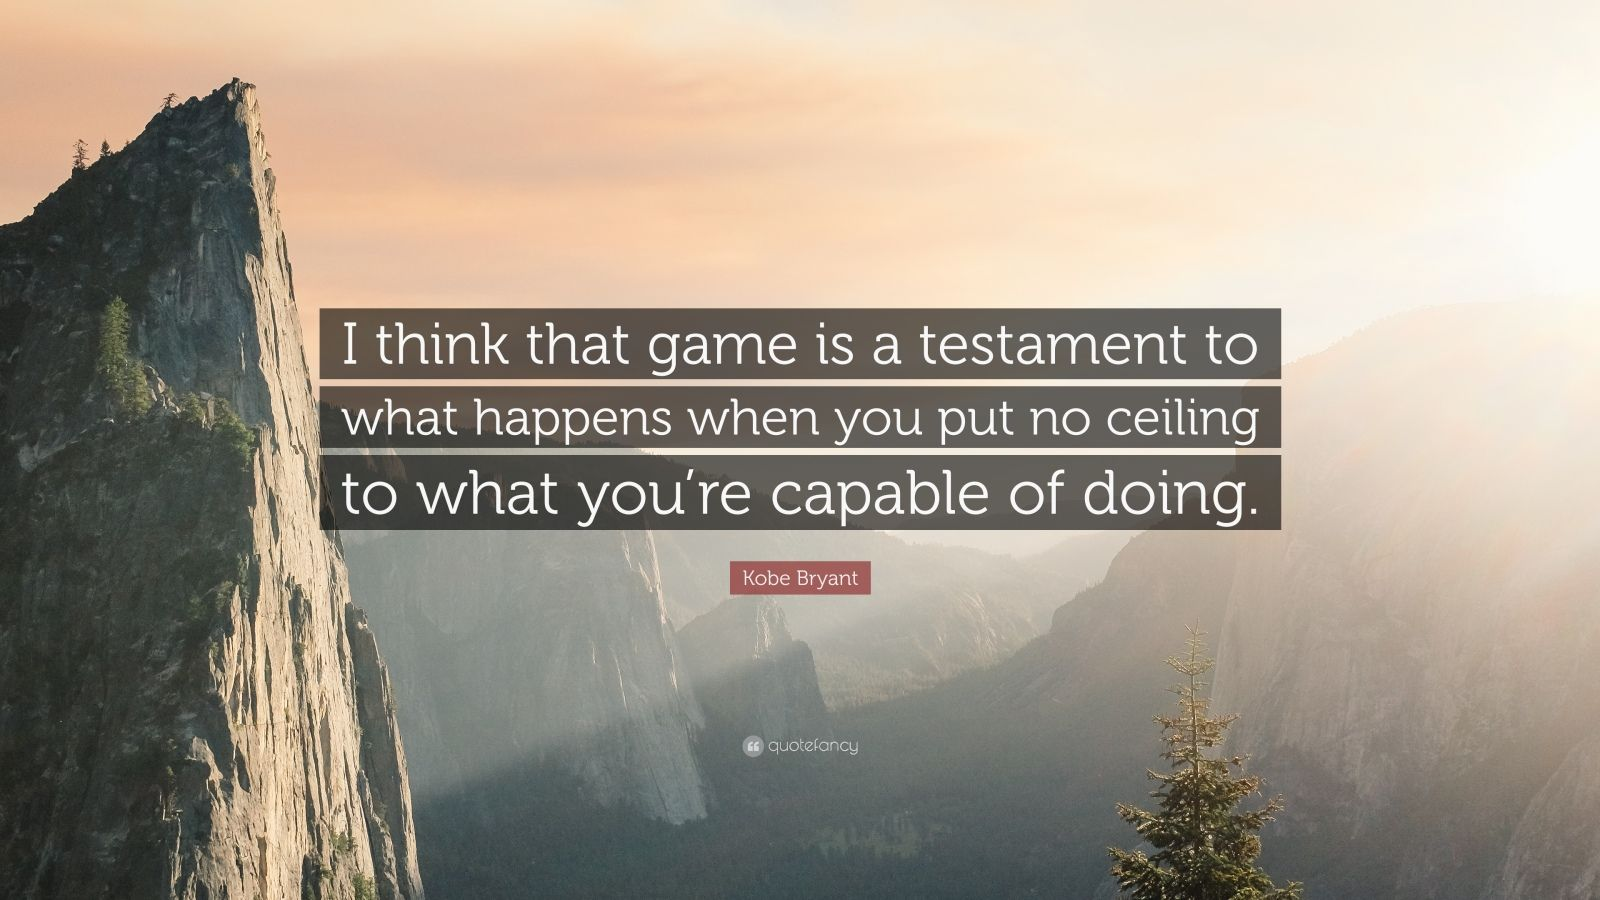 """Kobe Bryant Quote: """"I think that game is a testament to what happens when you put no ceiling to what you're capable of doing."""""""